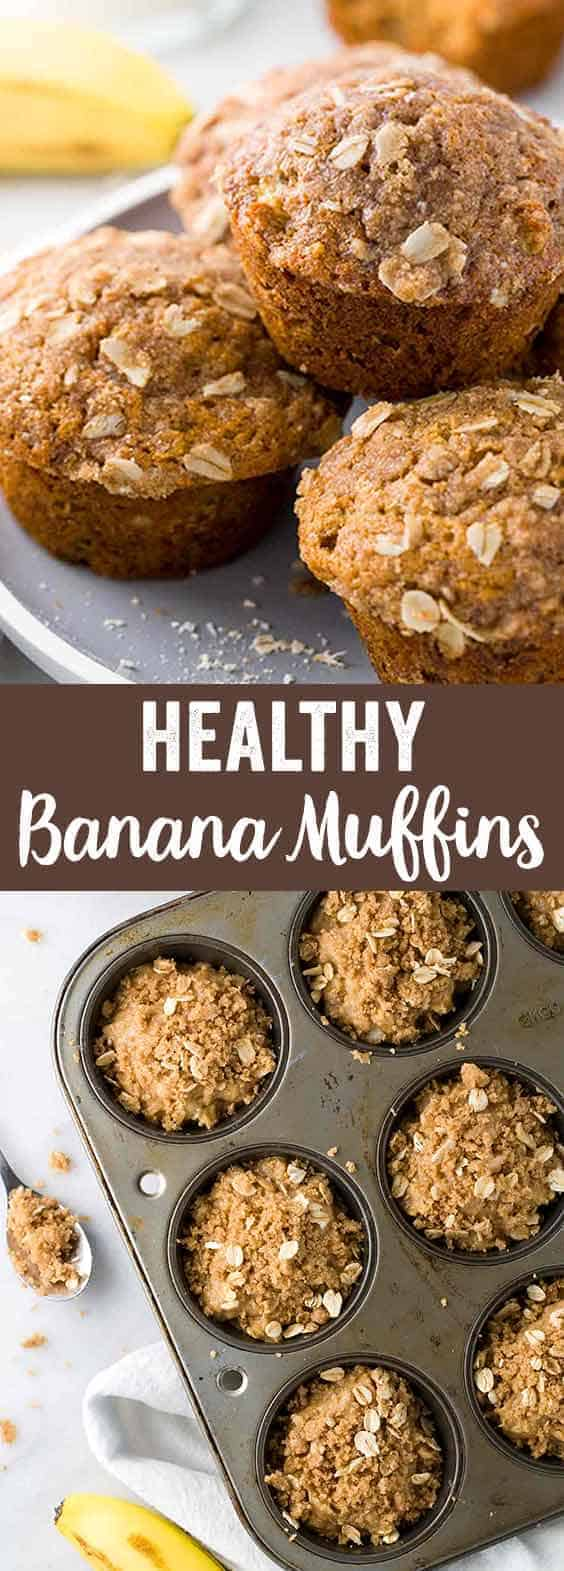 Healthy banana muffins recipe made with old fashioned rolled oats and whole wheat flour. Start your day with an easy, nutritious breakfast. This mix contains several healthier ingredient substitutions.